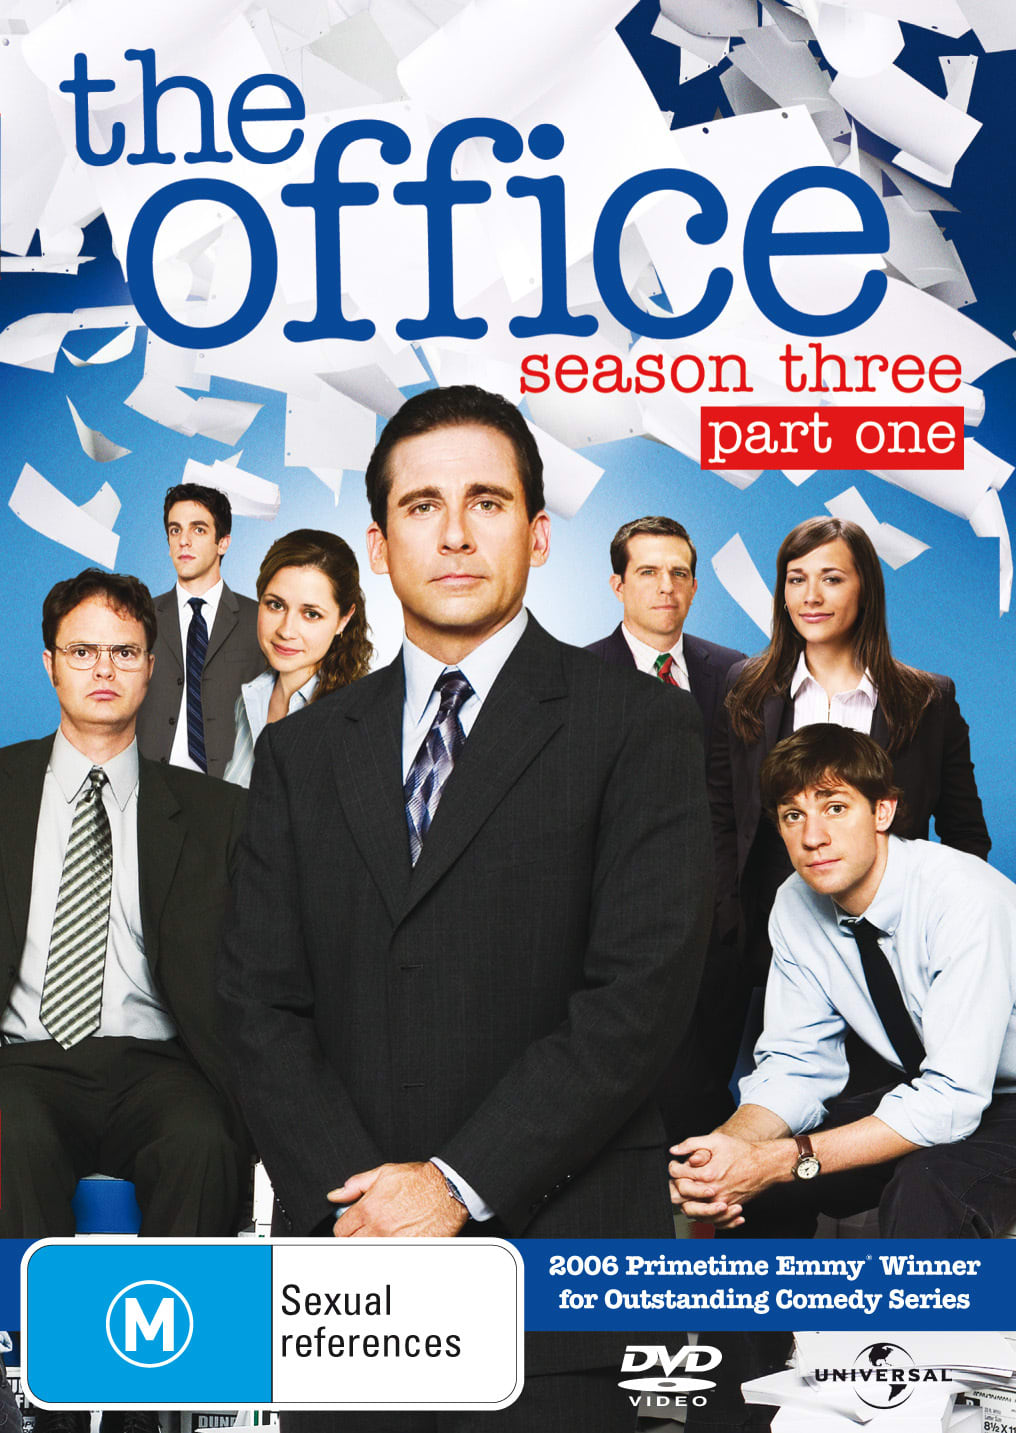 The Office - An American Workplace: Season Three, Part One [DVD]